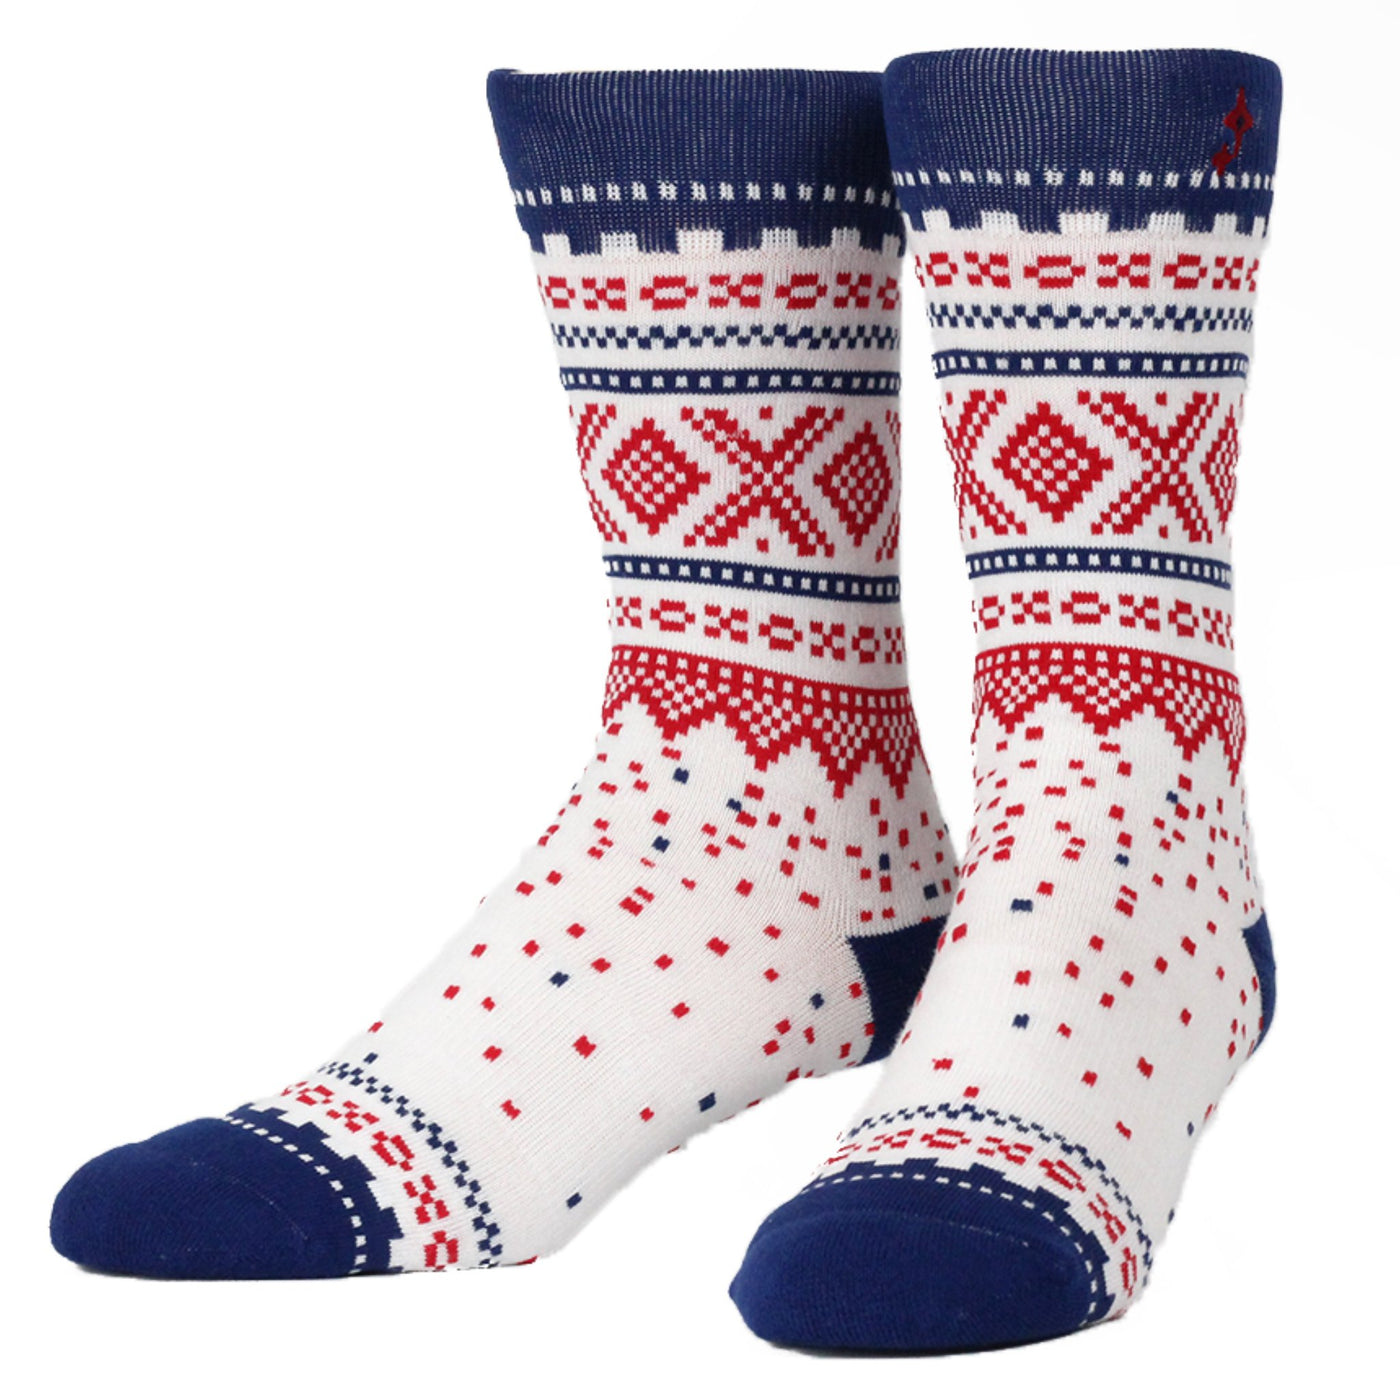 Marius Summer White Crew Socks